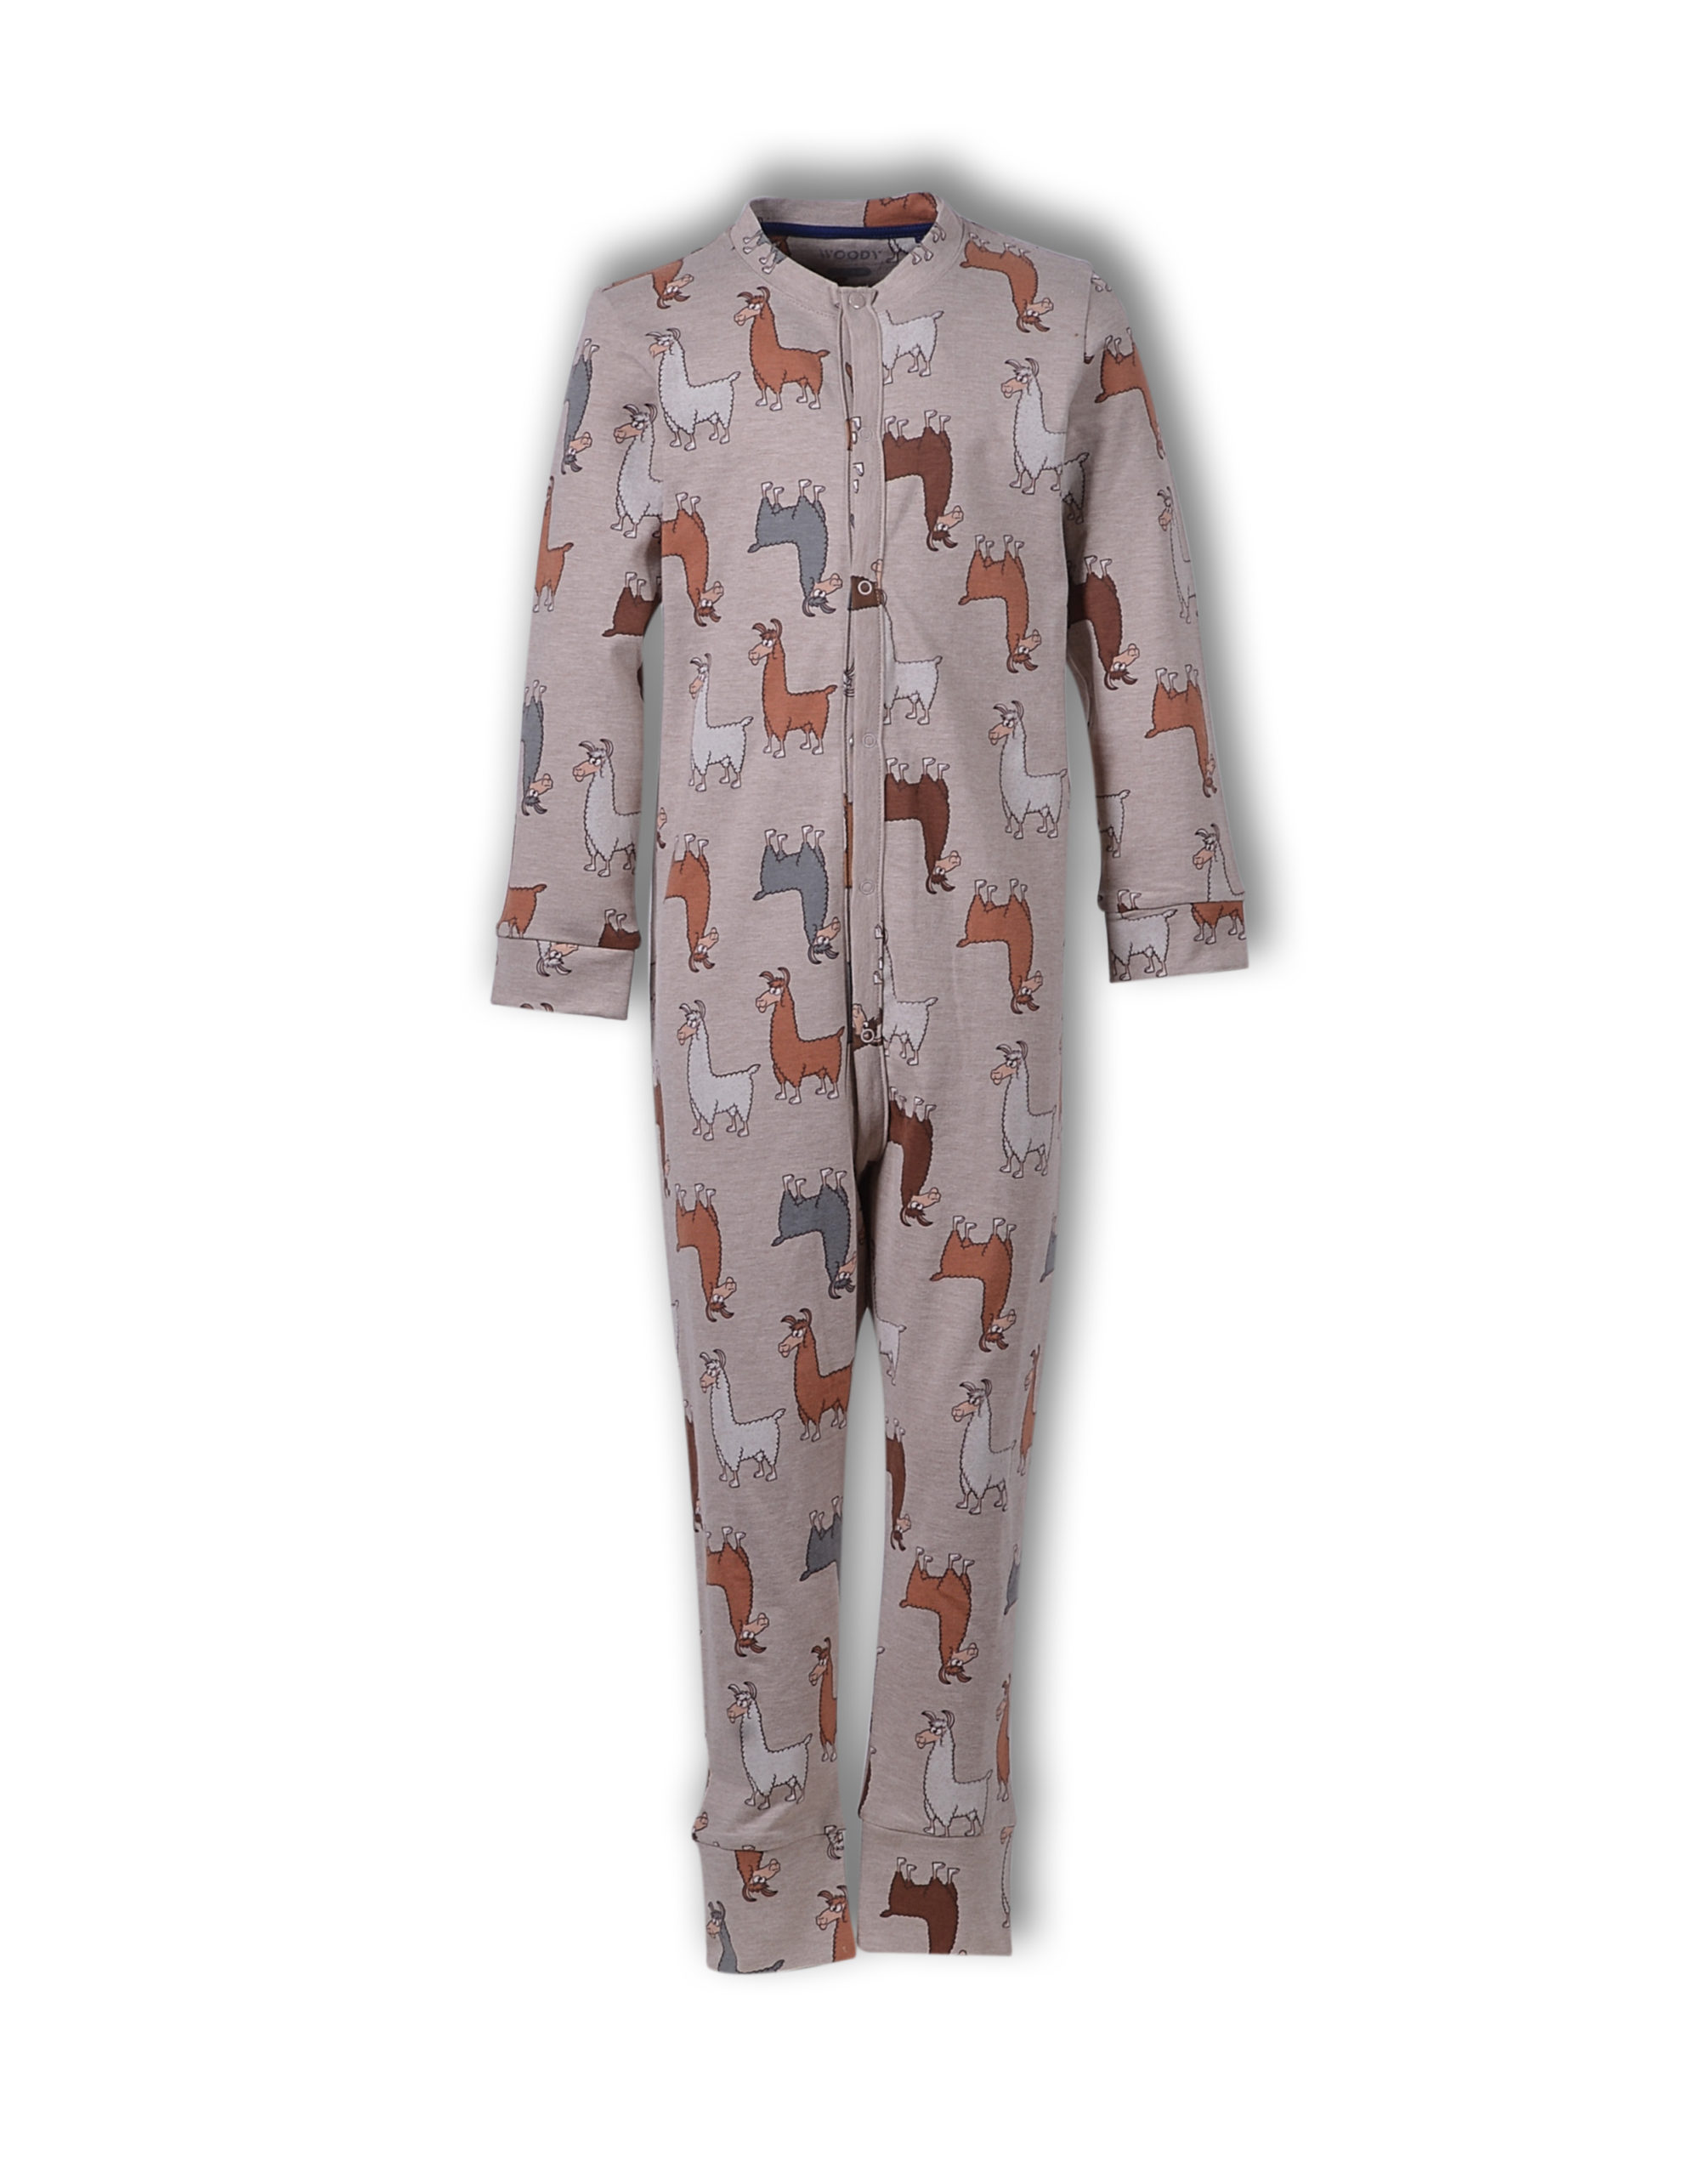 Woody Unisex Onesie, Alpaca All-Over Print